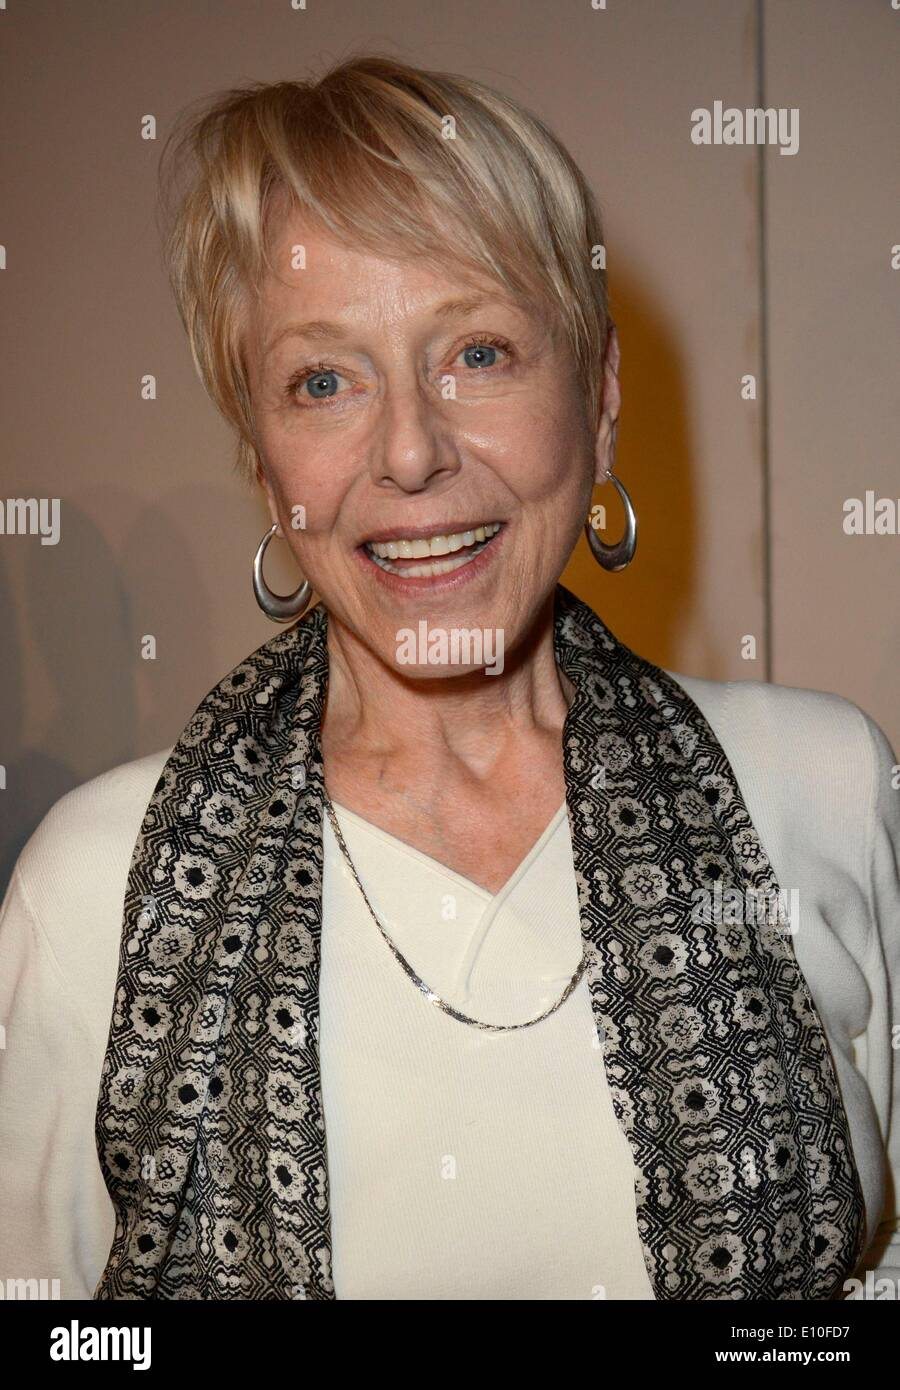 New York, NY, USA. 20th May, 2014. New York, USA. 20th May 2014. Karen Grassle in attendance for Private Reading of New Play HARM'S WAY, Theater Lab, New York, NY May 20, 2014. Credit:  Derek Storm/Everett Collection/Alamy Live News/Alamy Live News - Stock Image